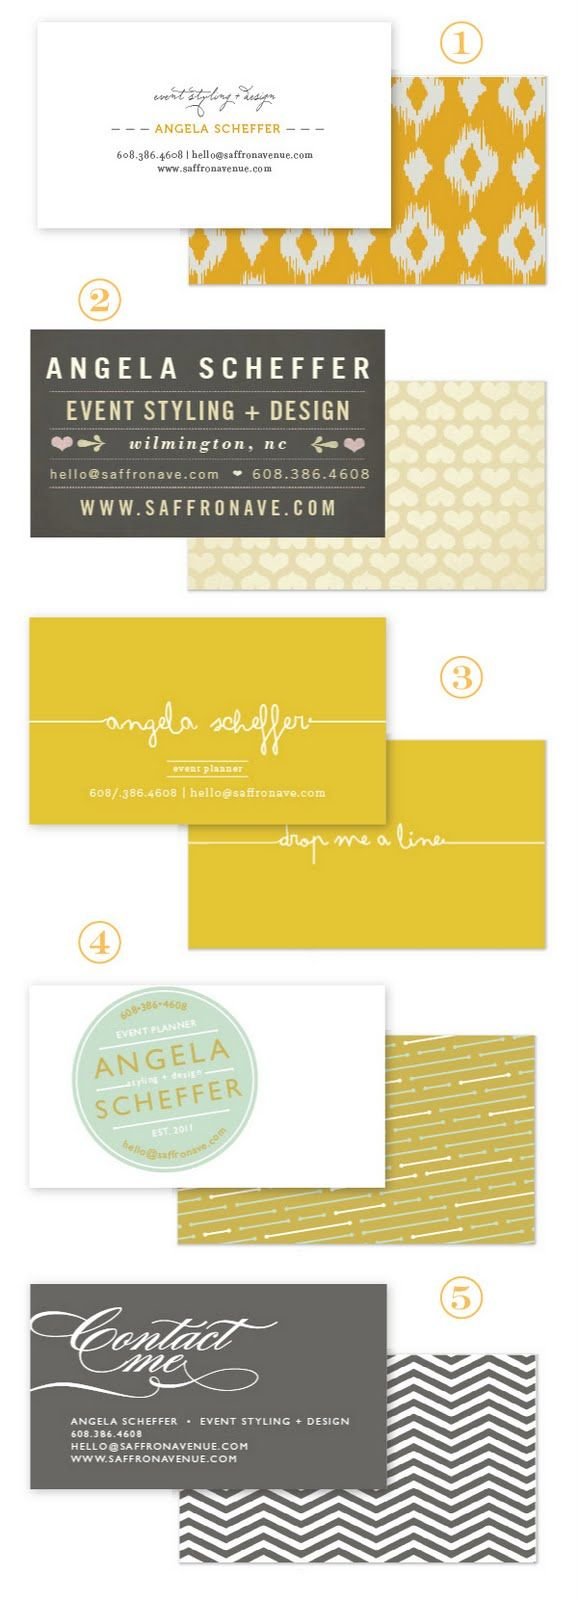 Business cards. Need 'em. Love these.